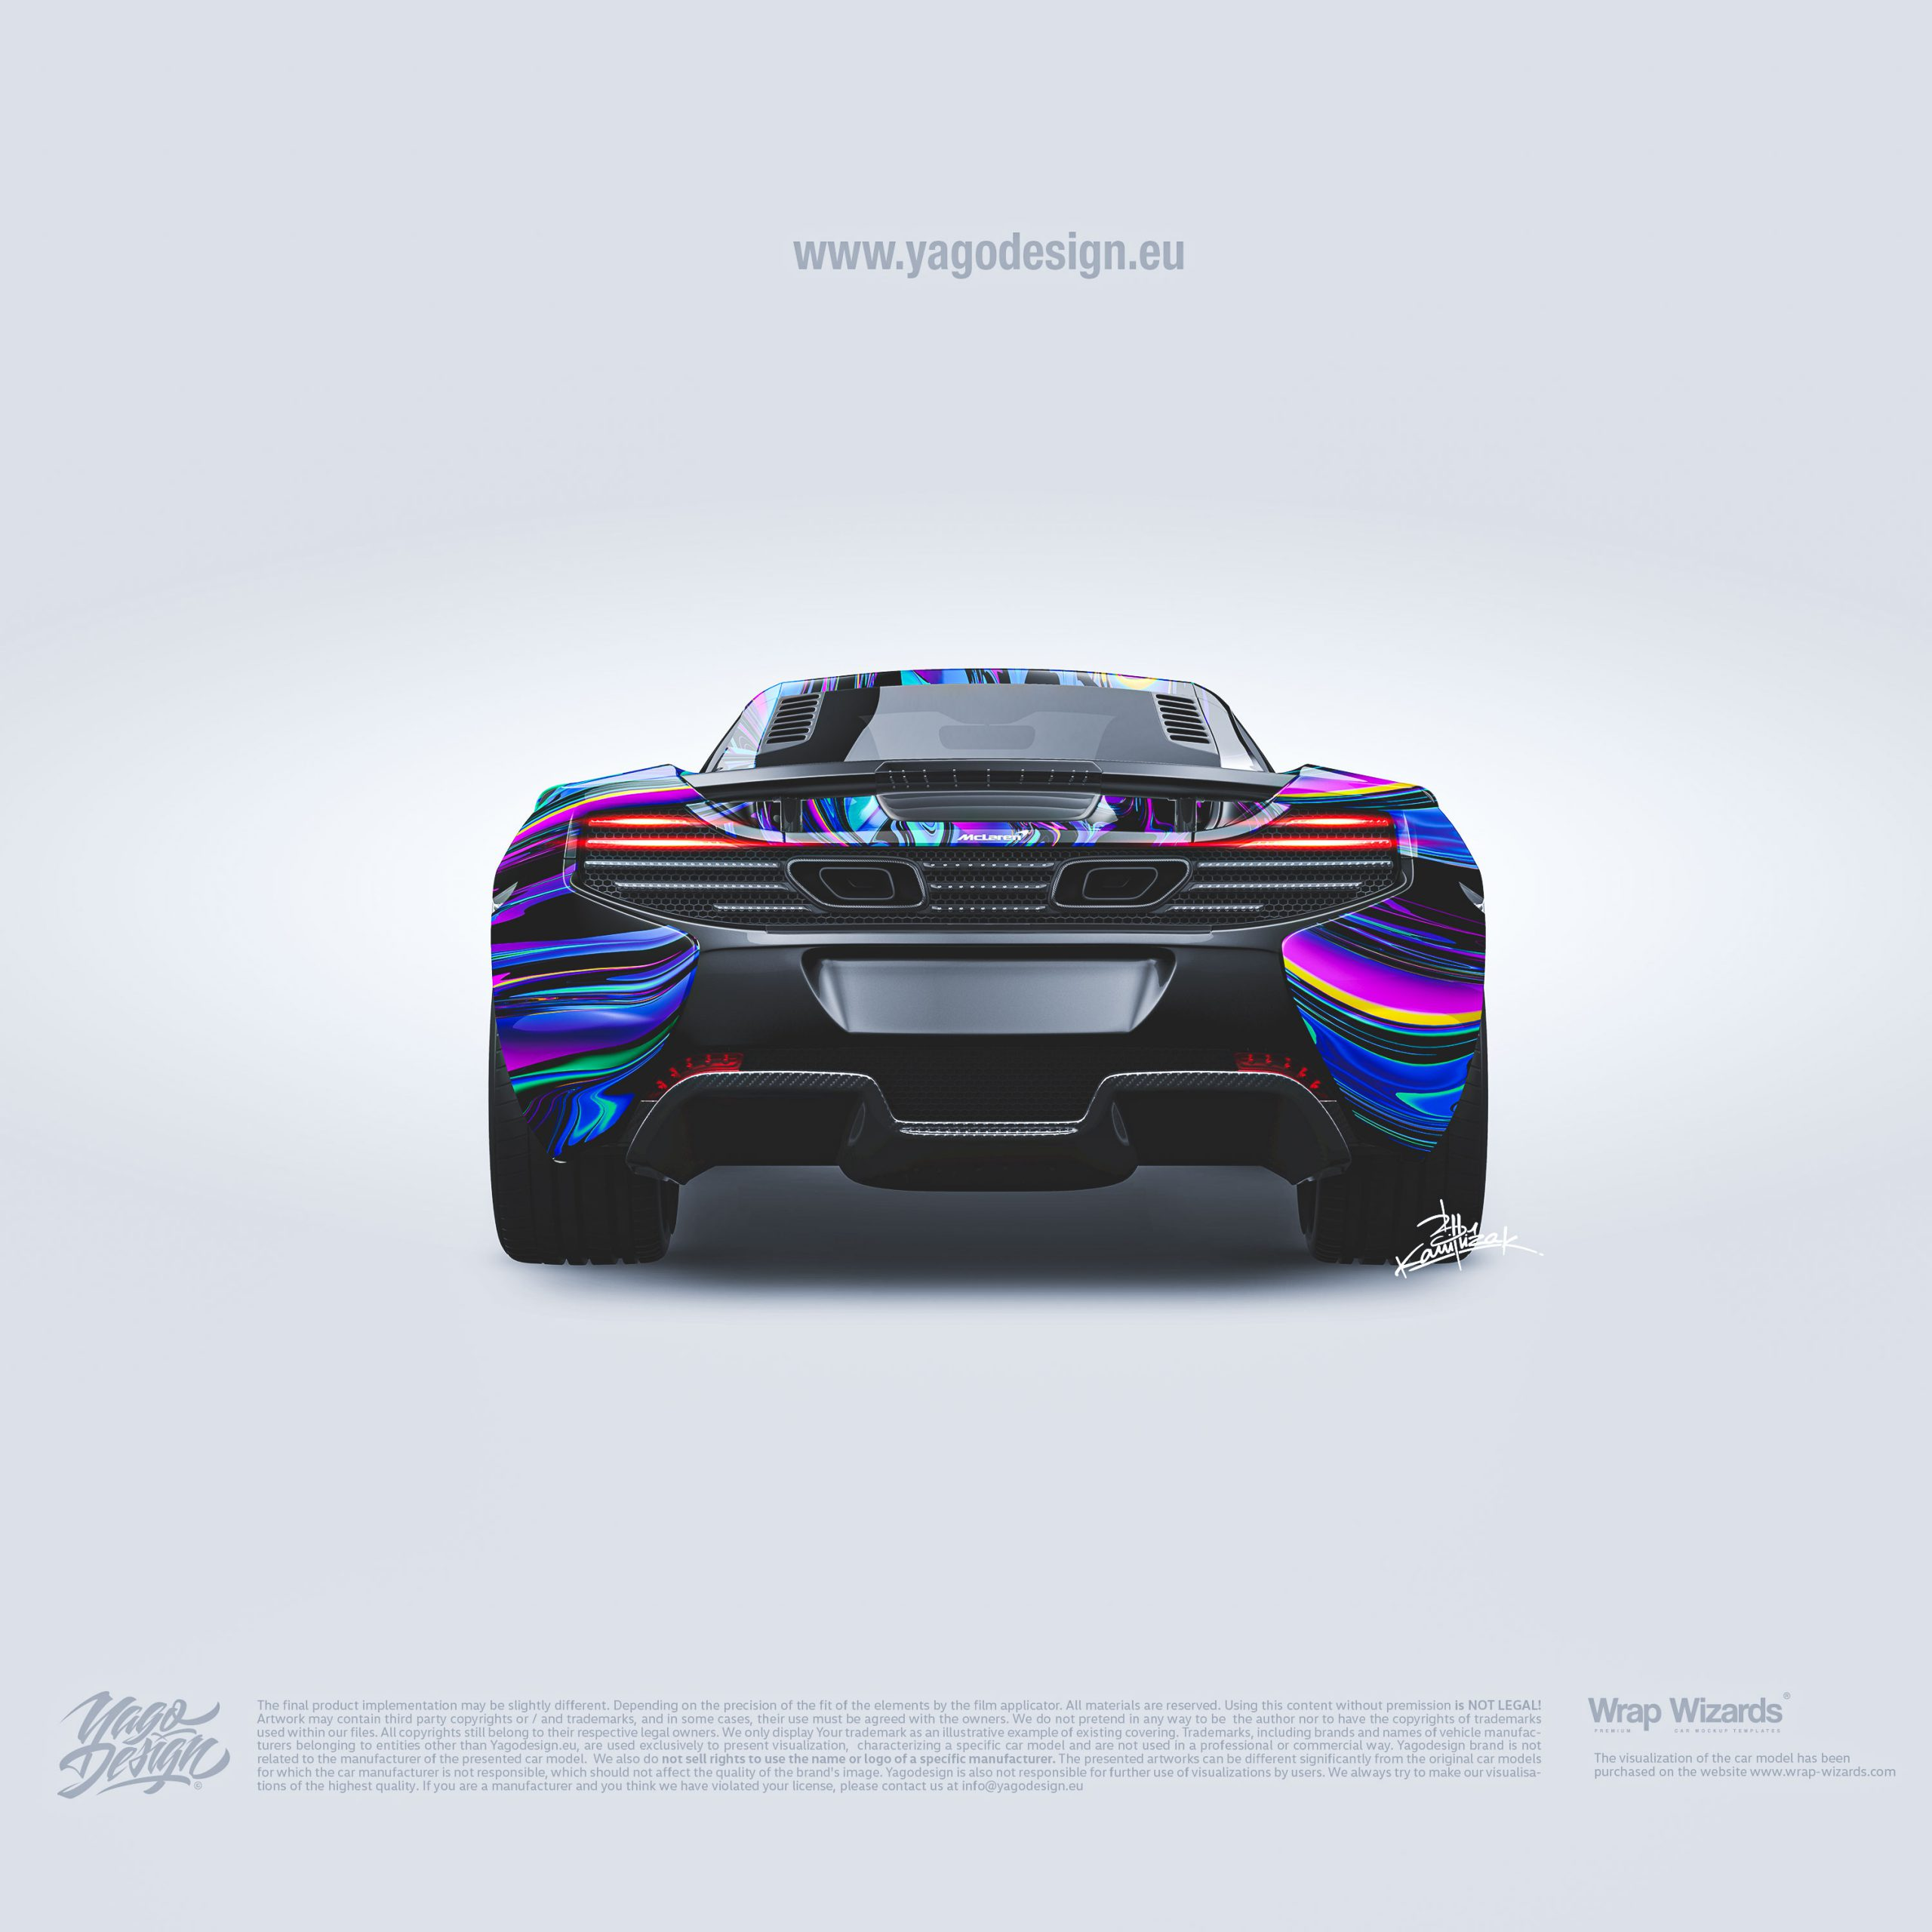 McLaren-650S-Coupe-By-Yagodesign-Automotive-Design-Studio-rear-View-scaled